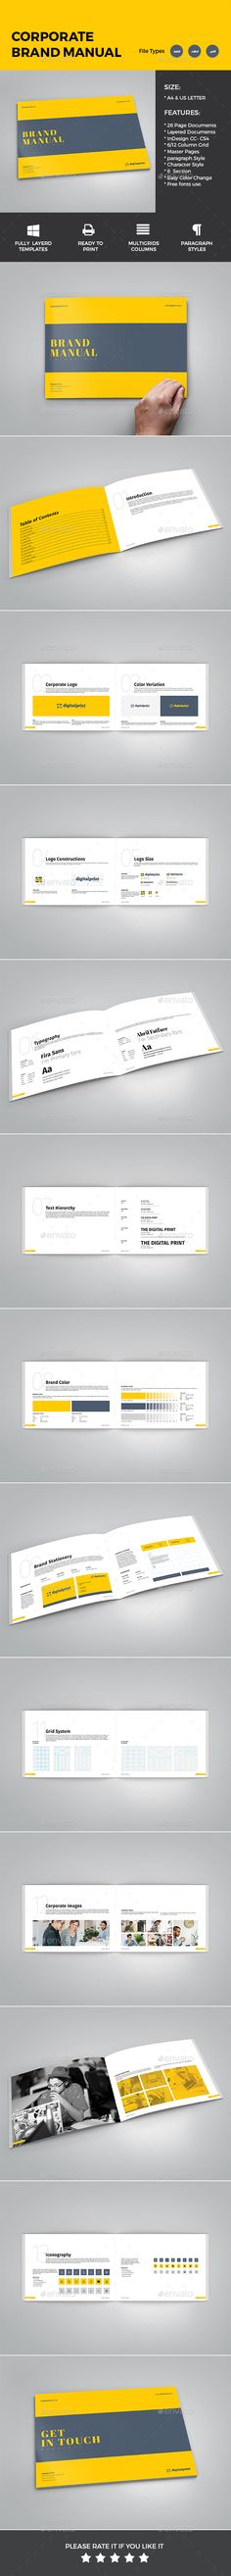 Portfolio Book Template Cleanses, Creative and Template - it manual template